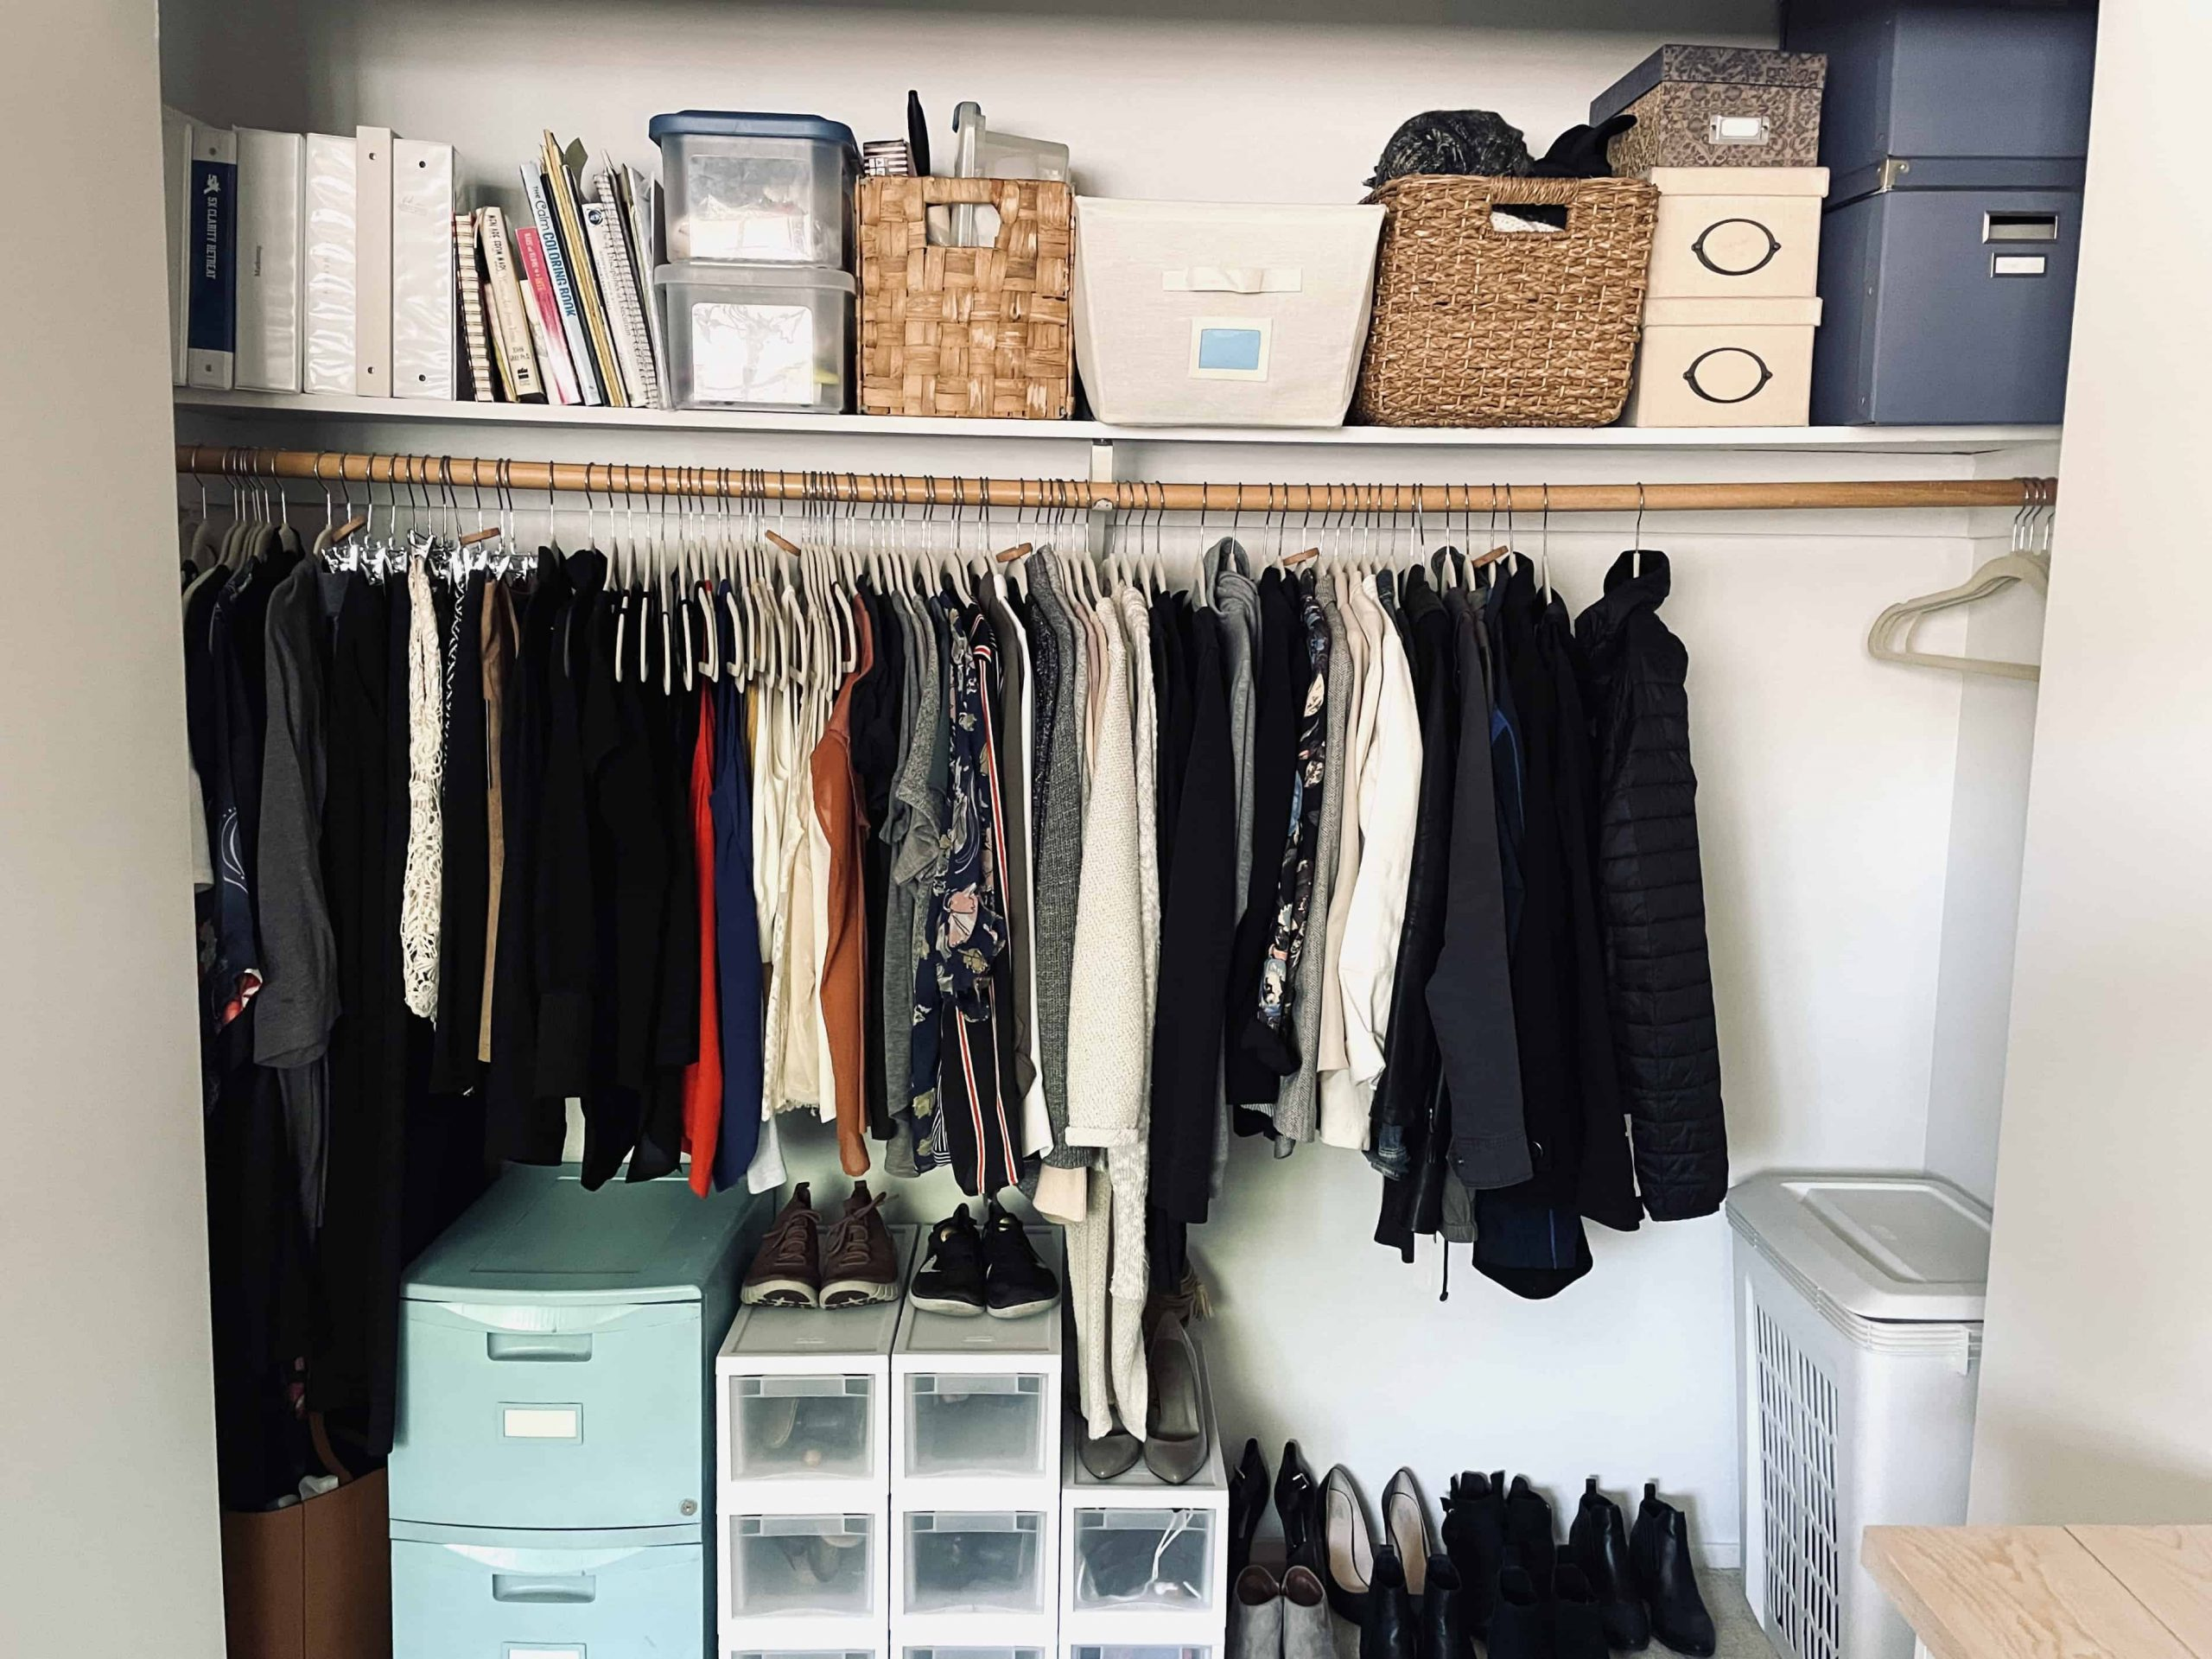 How to organize your closet | Made of lovely